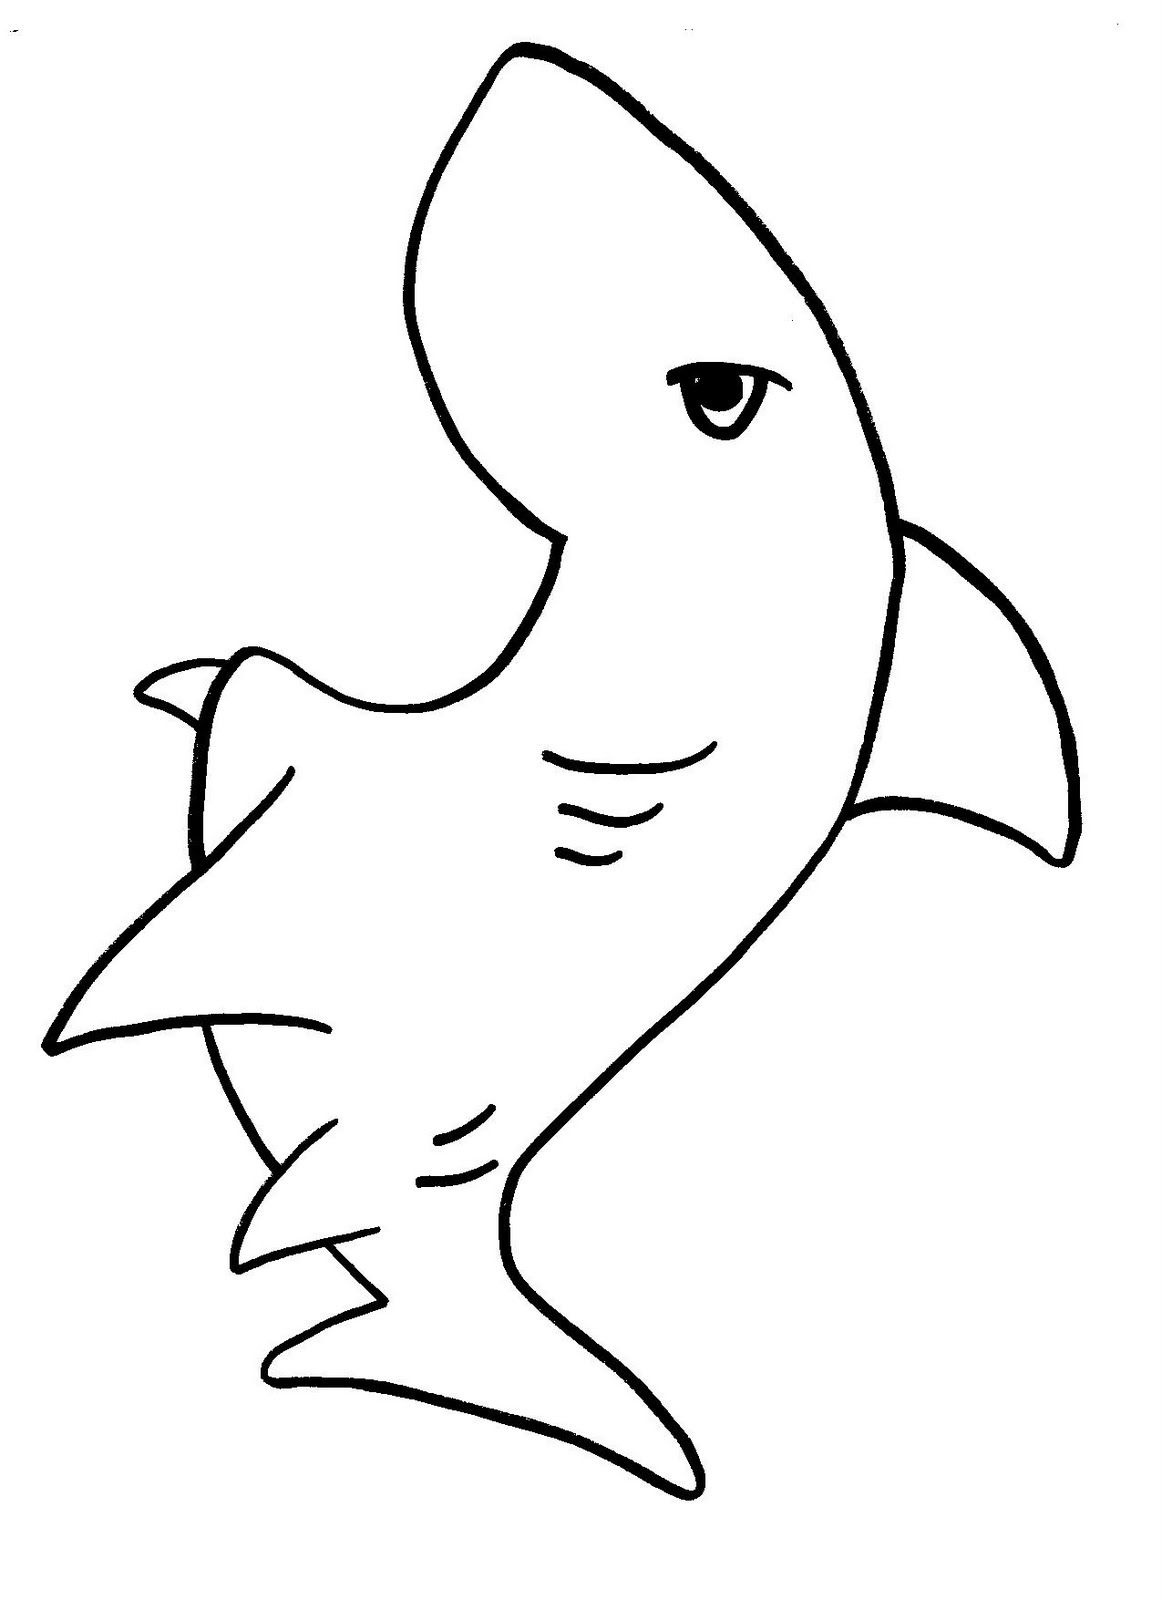 Brilliant Beginnings Preschool Shark Teeth Coloring Page W